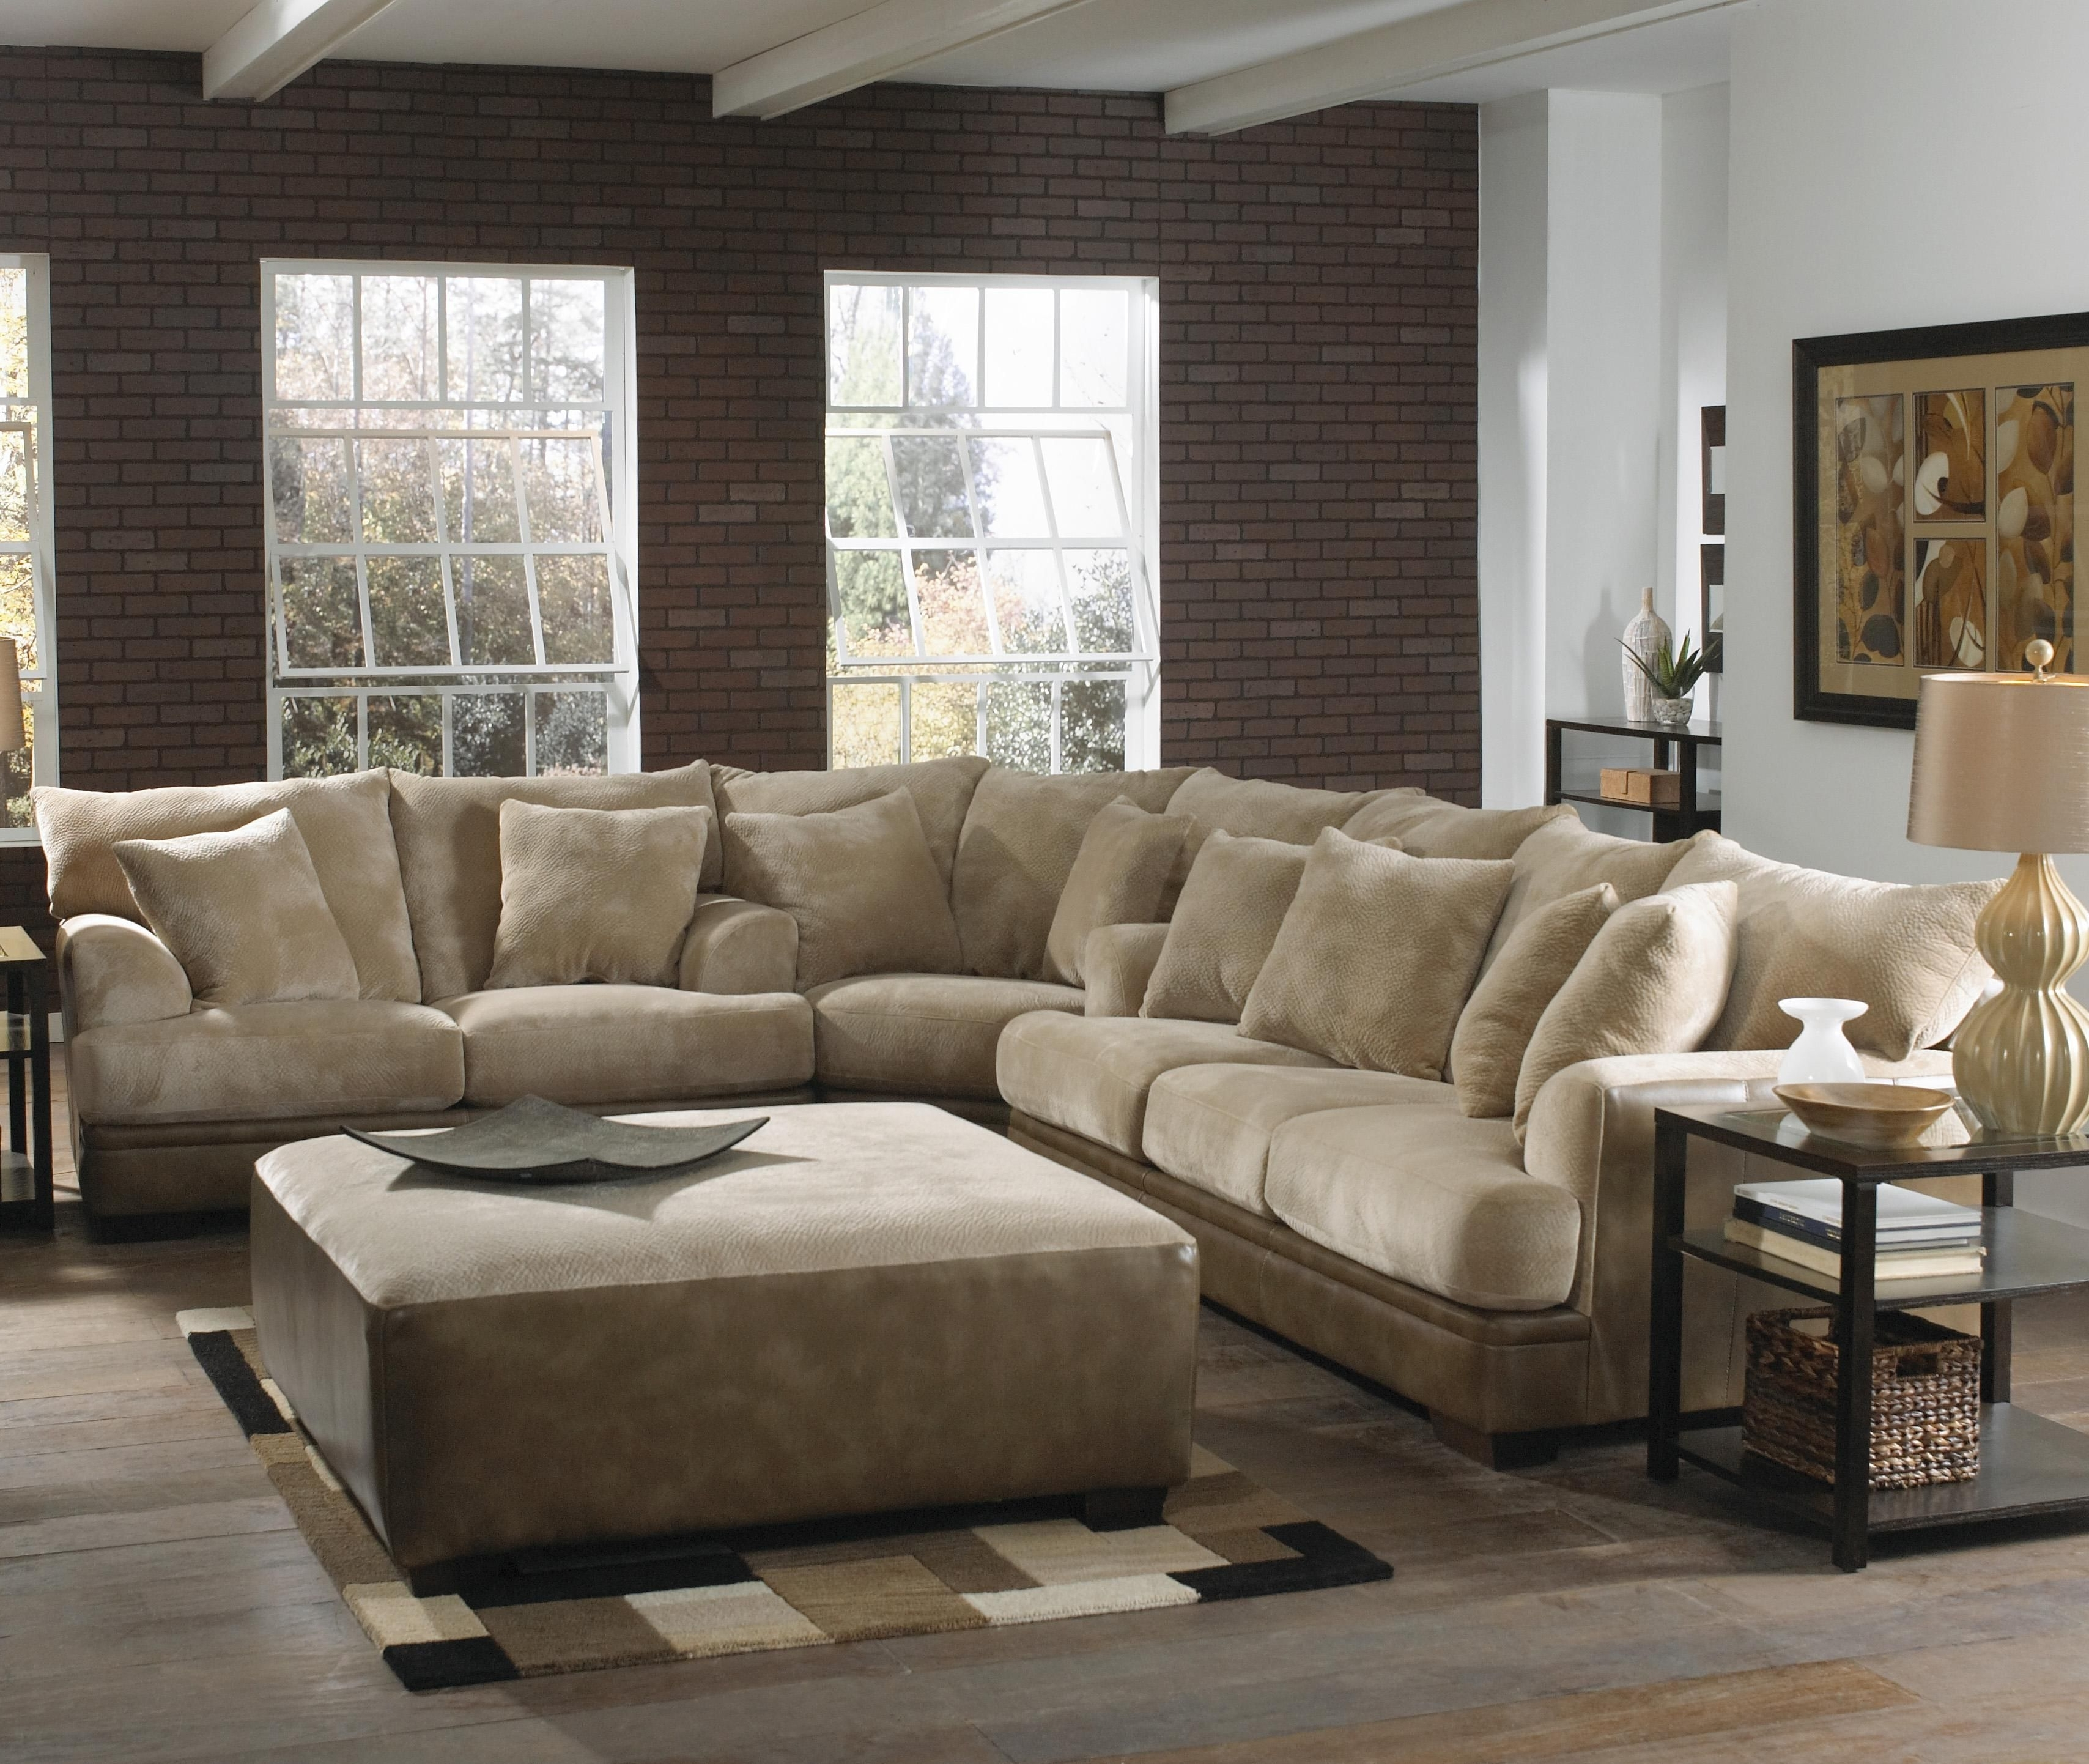 Widely Used Barkley Large L Shaped Sectional Sofa With Right Side Loveseat Pertaining To Jackson Ms Sectional Sofas (View 20 of 20)